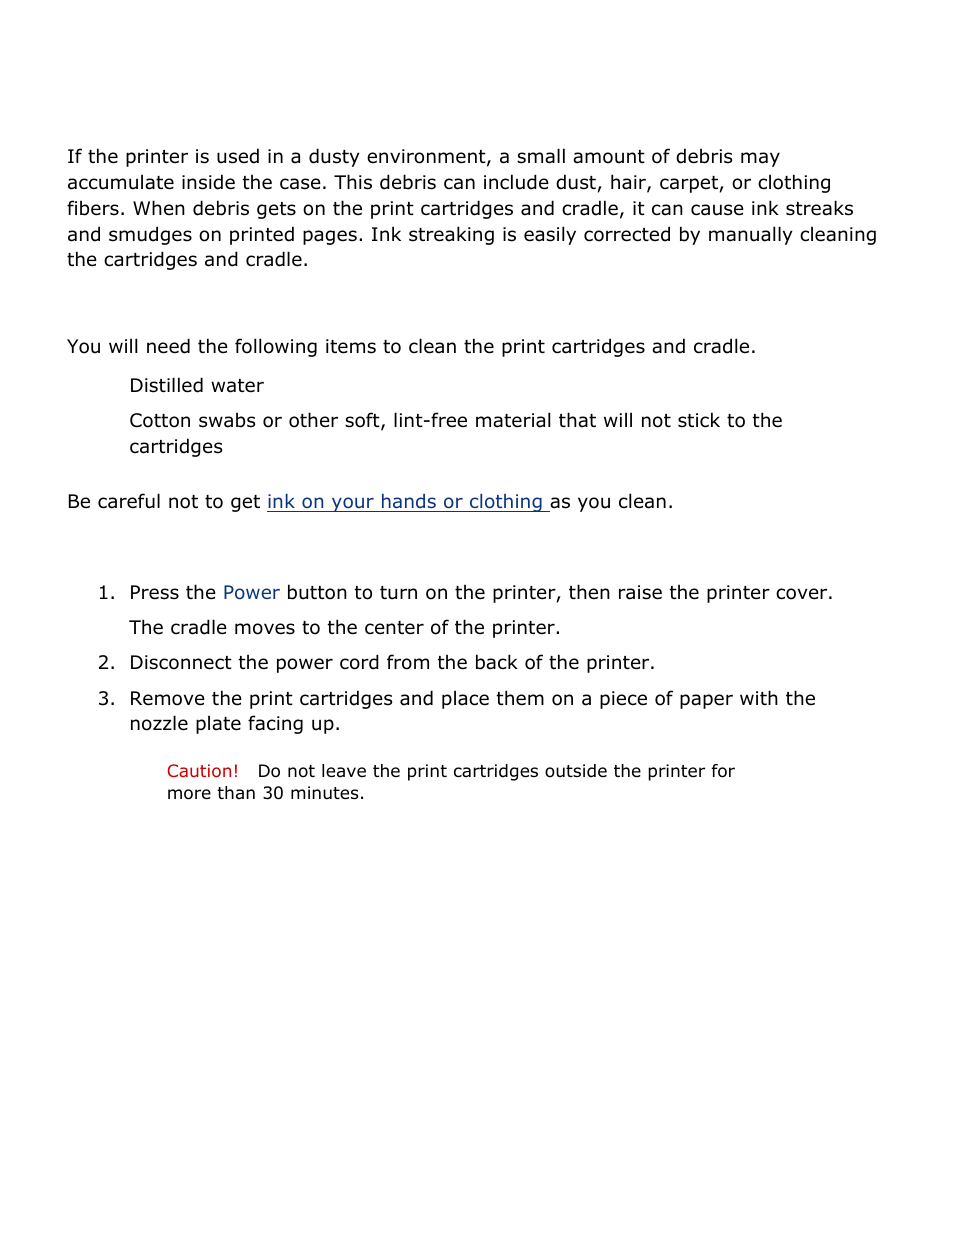 Manually cleaning print cartridges, Gathering cleaning